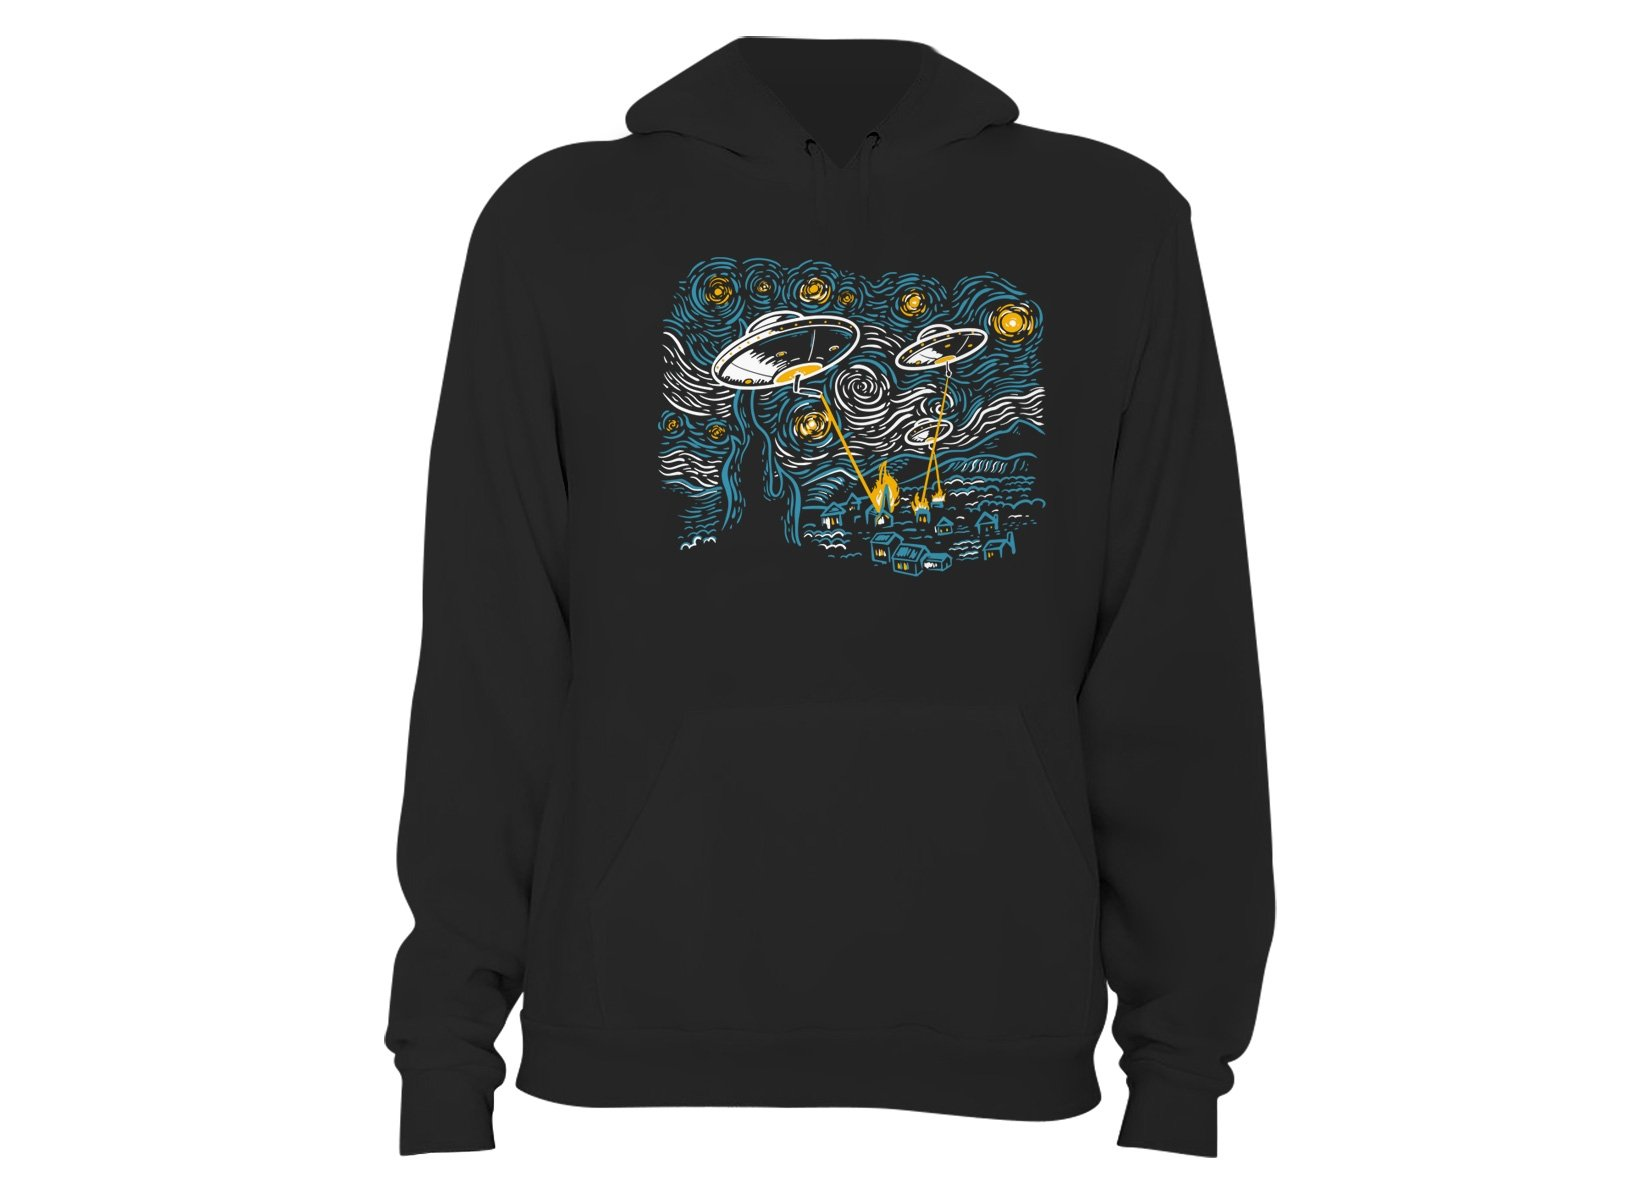 Starry Invasion on Hoodie